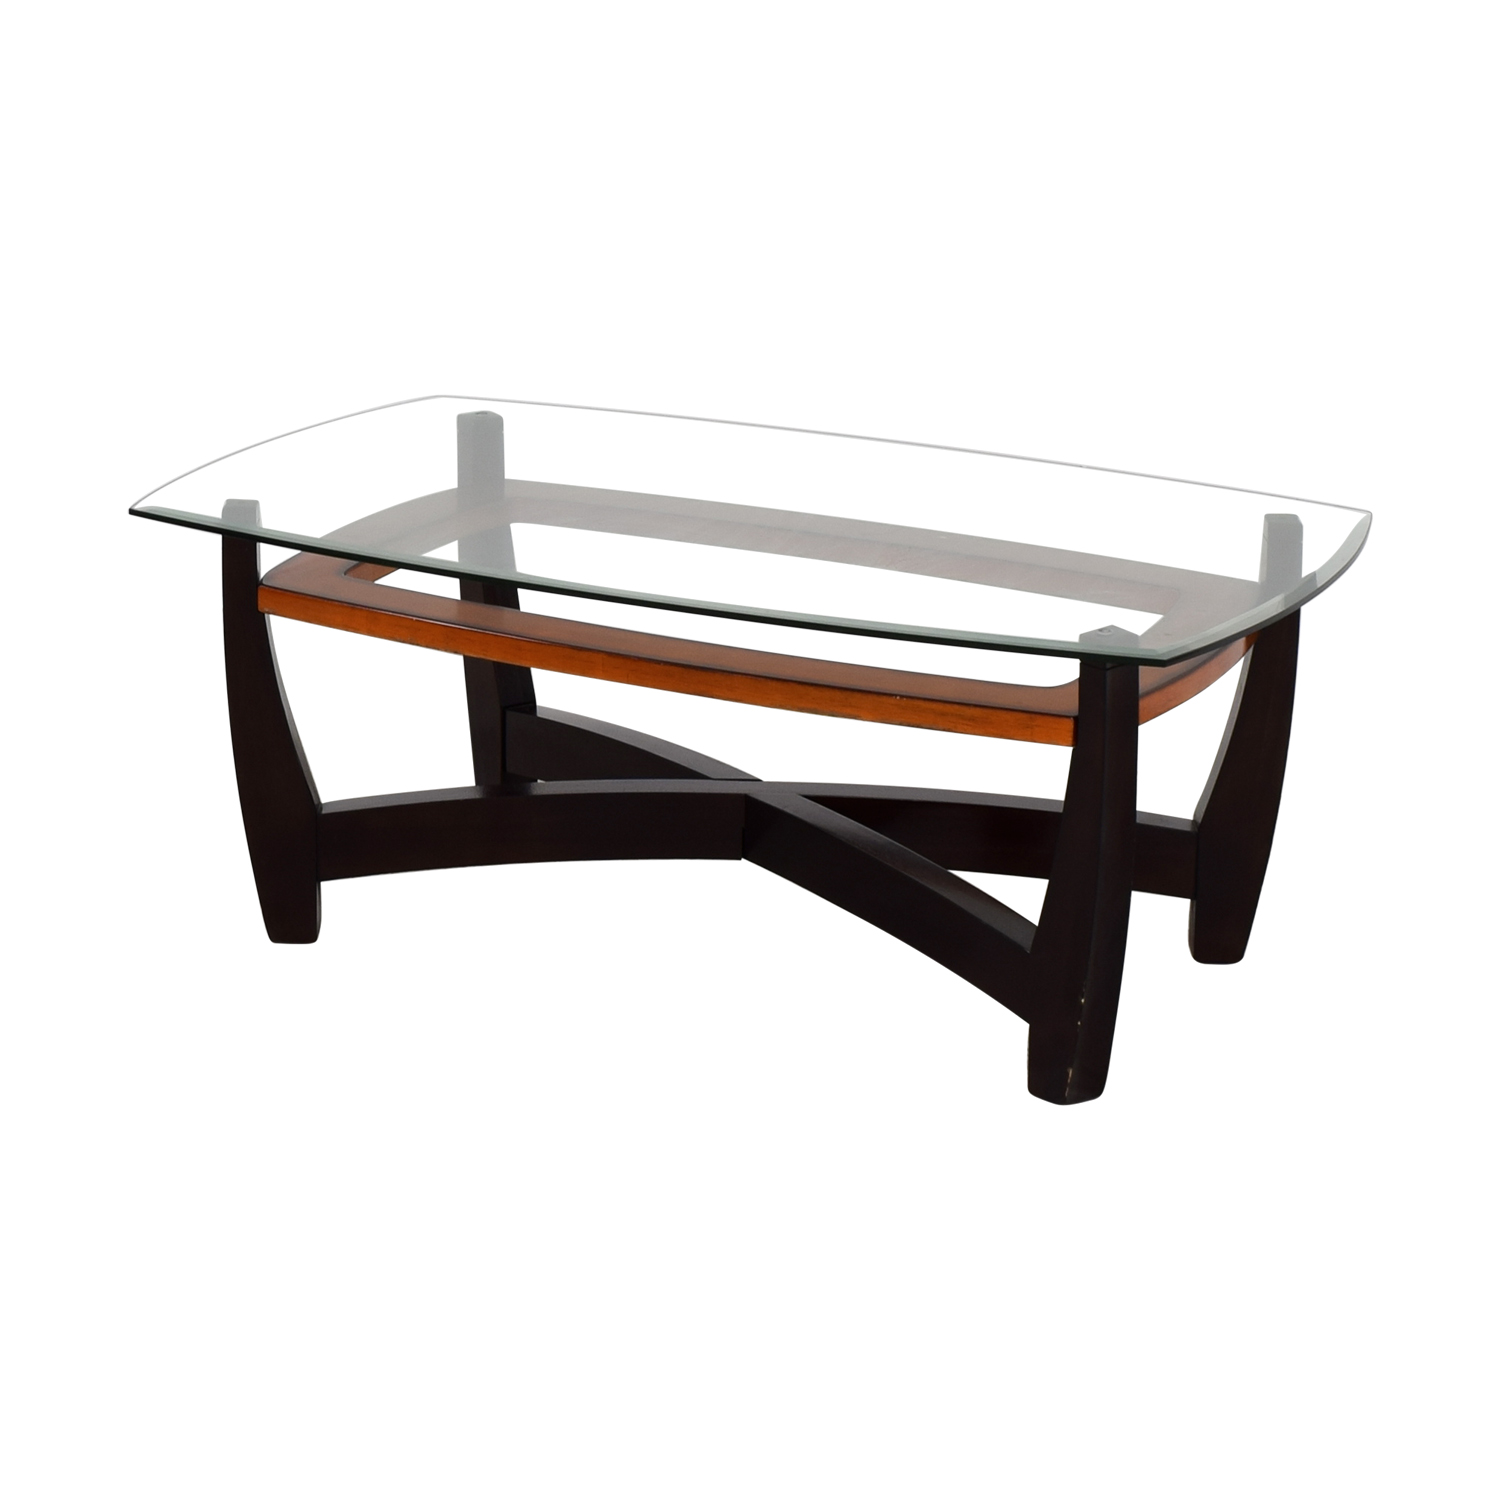 Wooden Coffee Table With Glass Top 76 Off Raymour And Flanigan Raymour And Flanigan